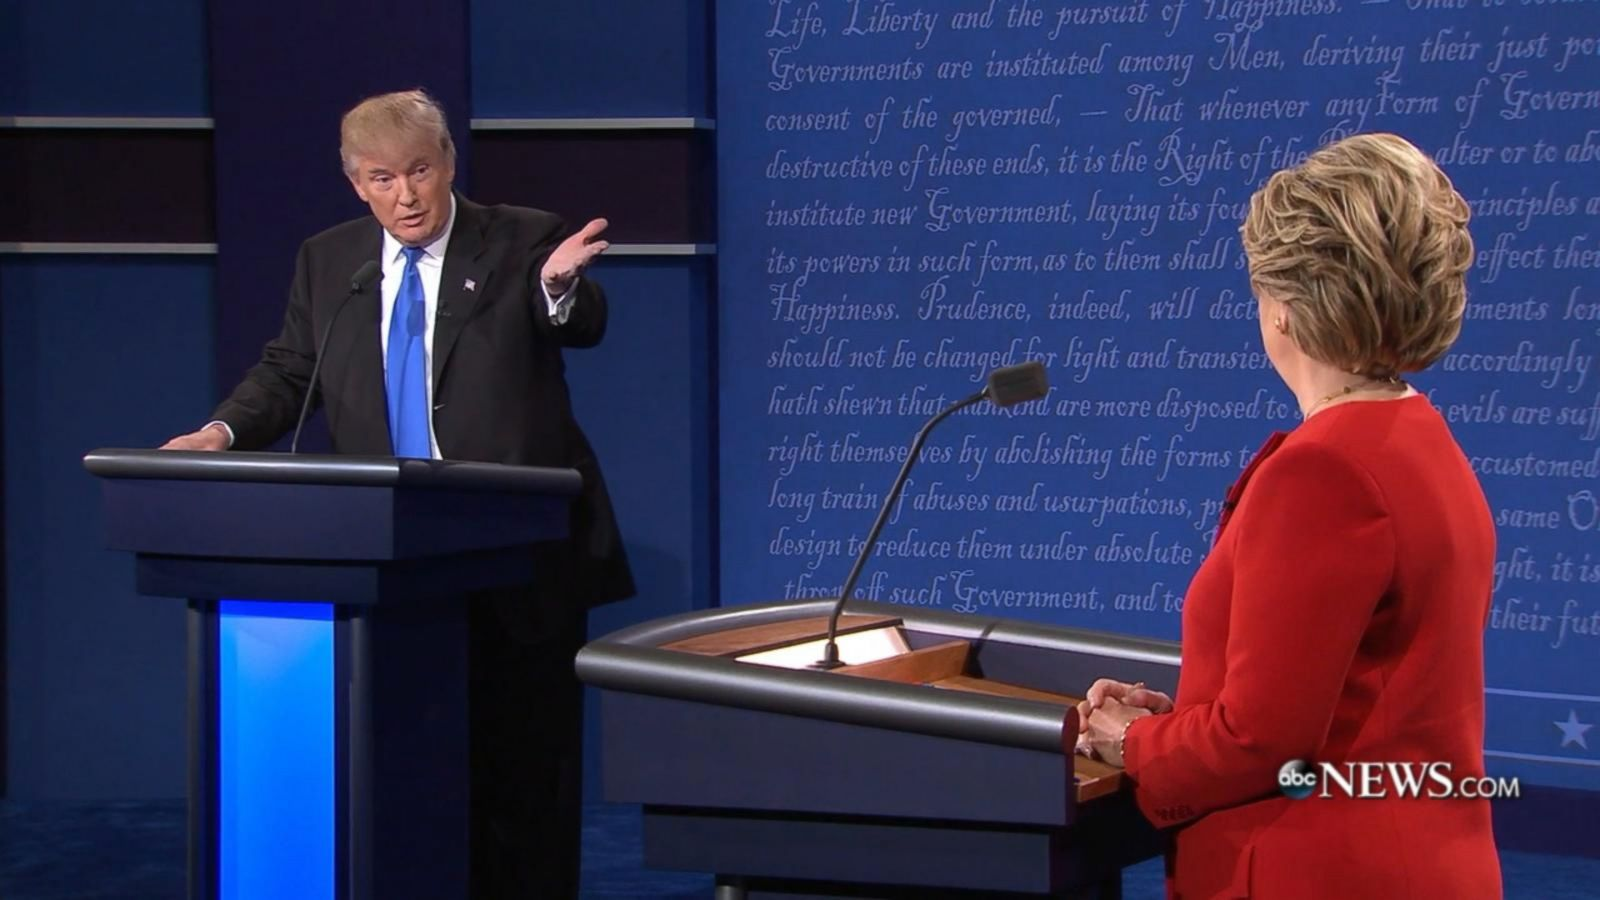 VIDEO: Candidates Try To Capitalize Or Recover From Debate Performance